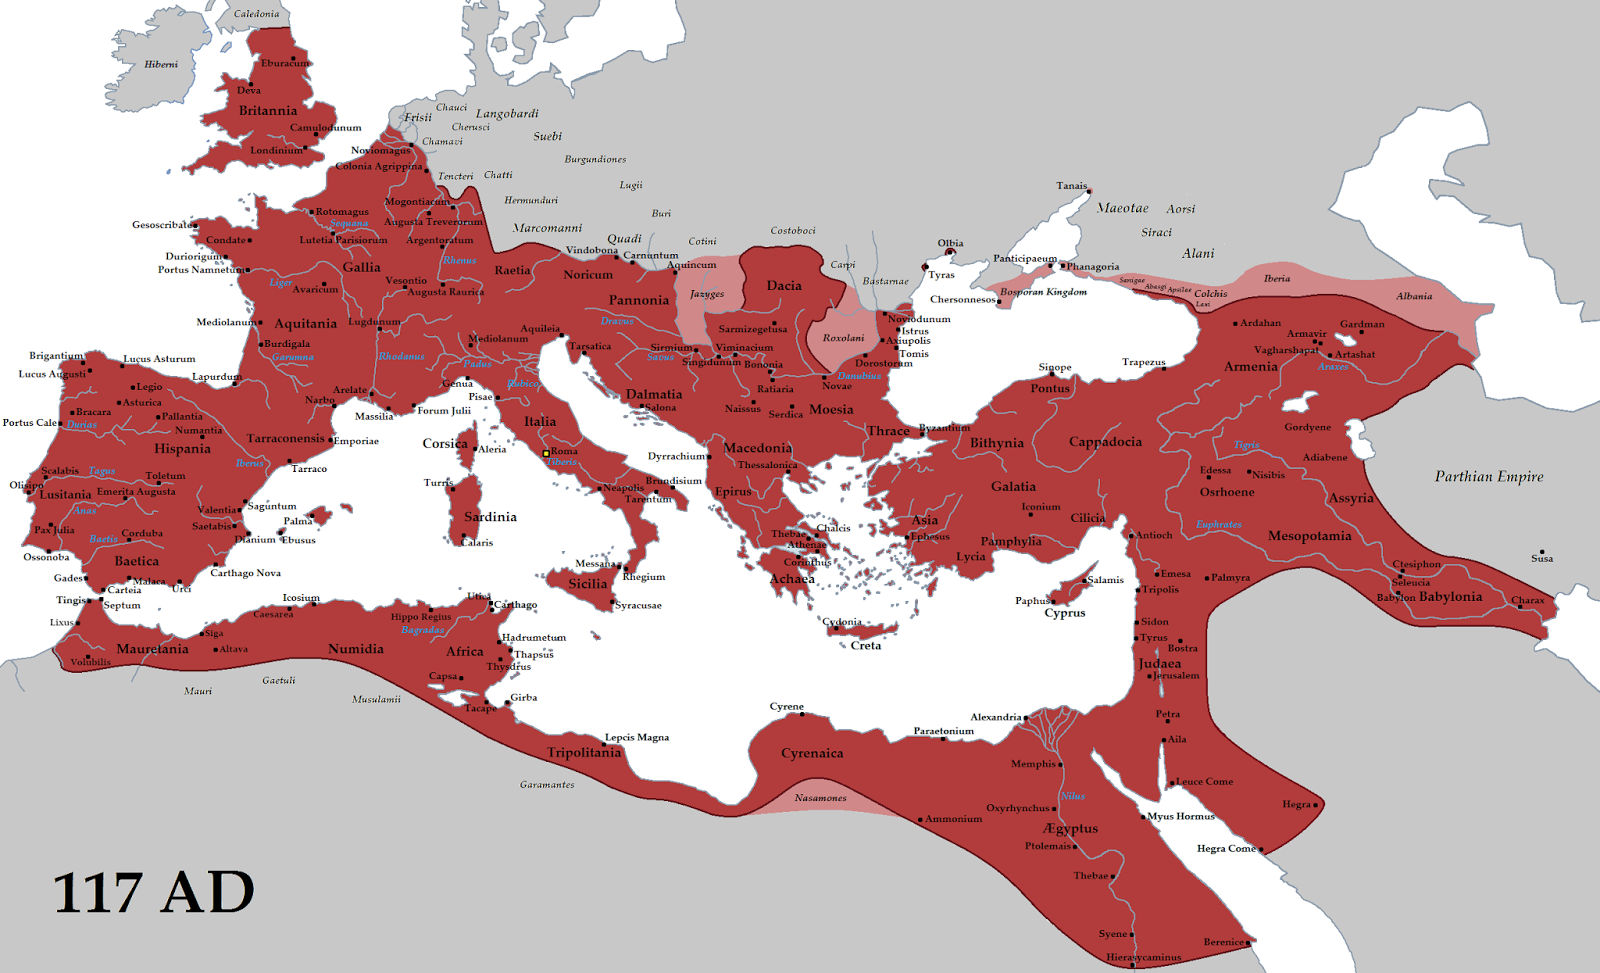 Roman Empire at its height (117 AD)